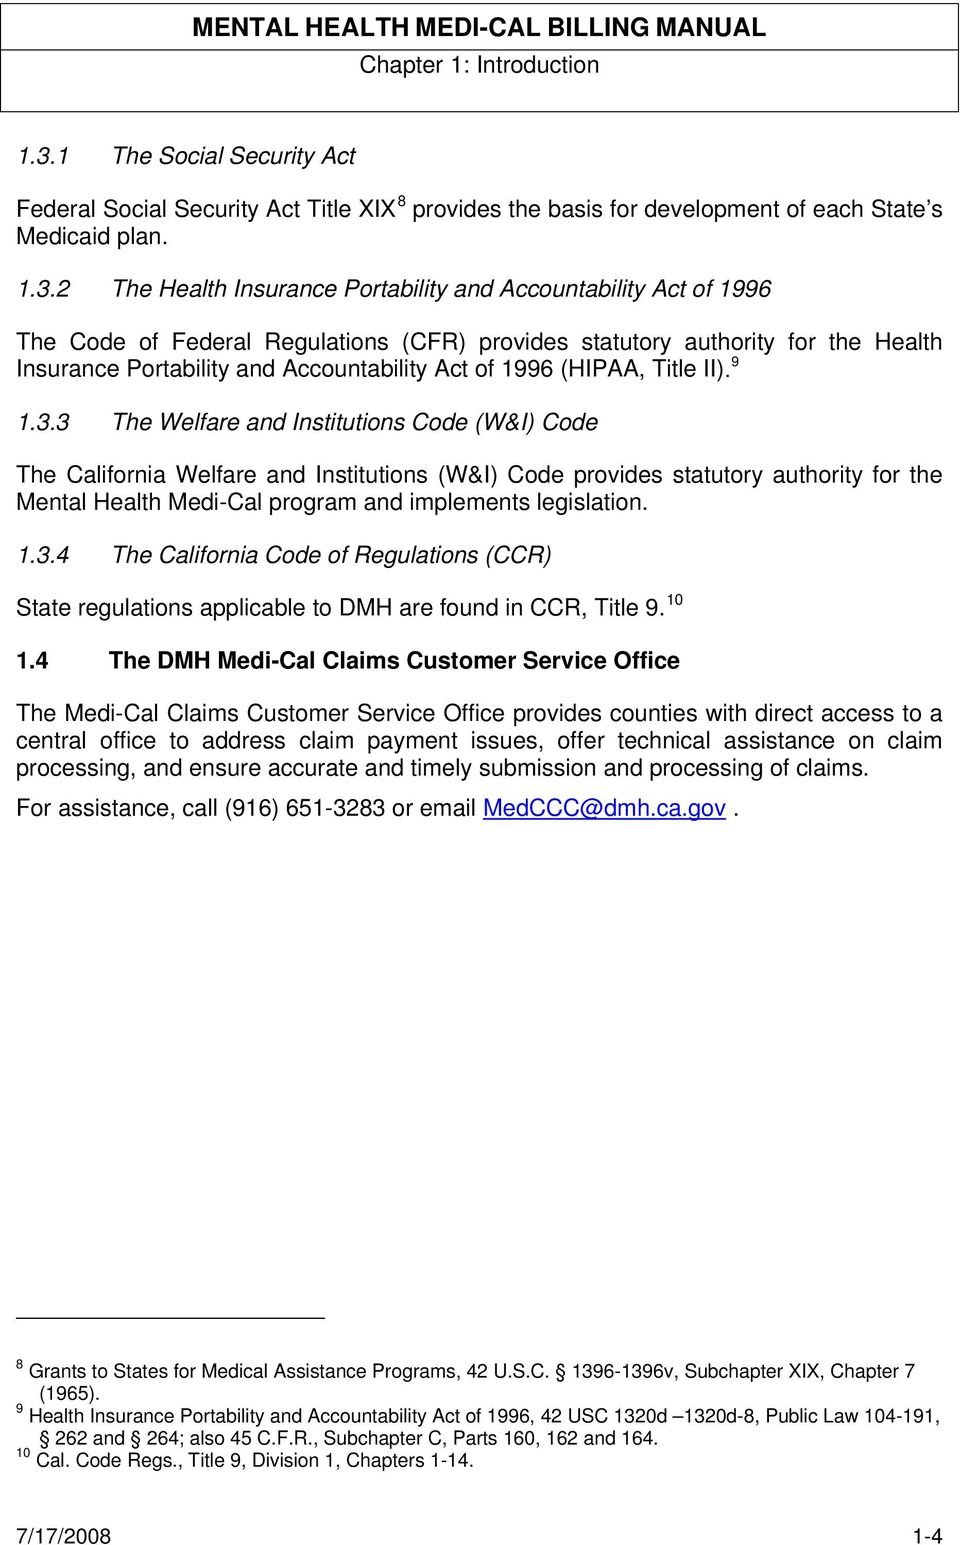 2 The Health Insurance Portability and Accountability Act of 1996 The Code  of Federal Regulations (